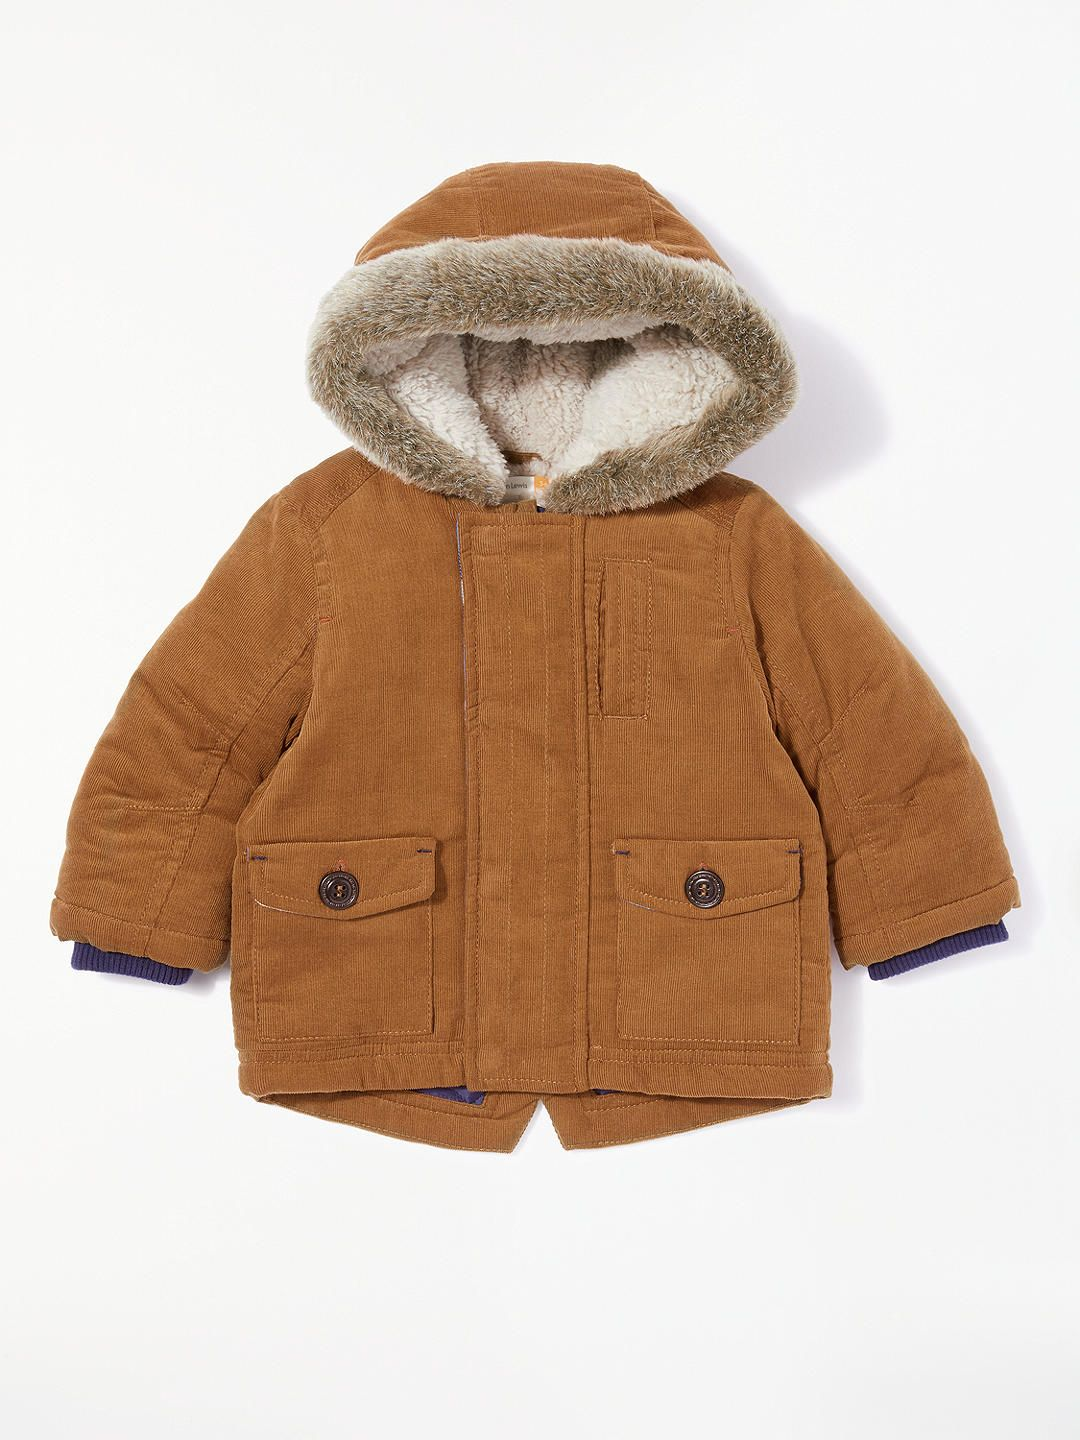 54453d62f BuyJohn Lewis   Partners Baby Cord Coat